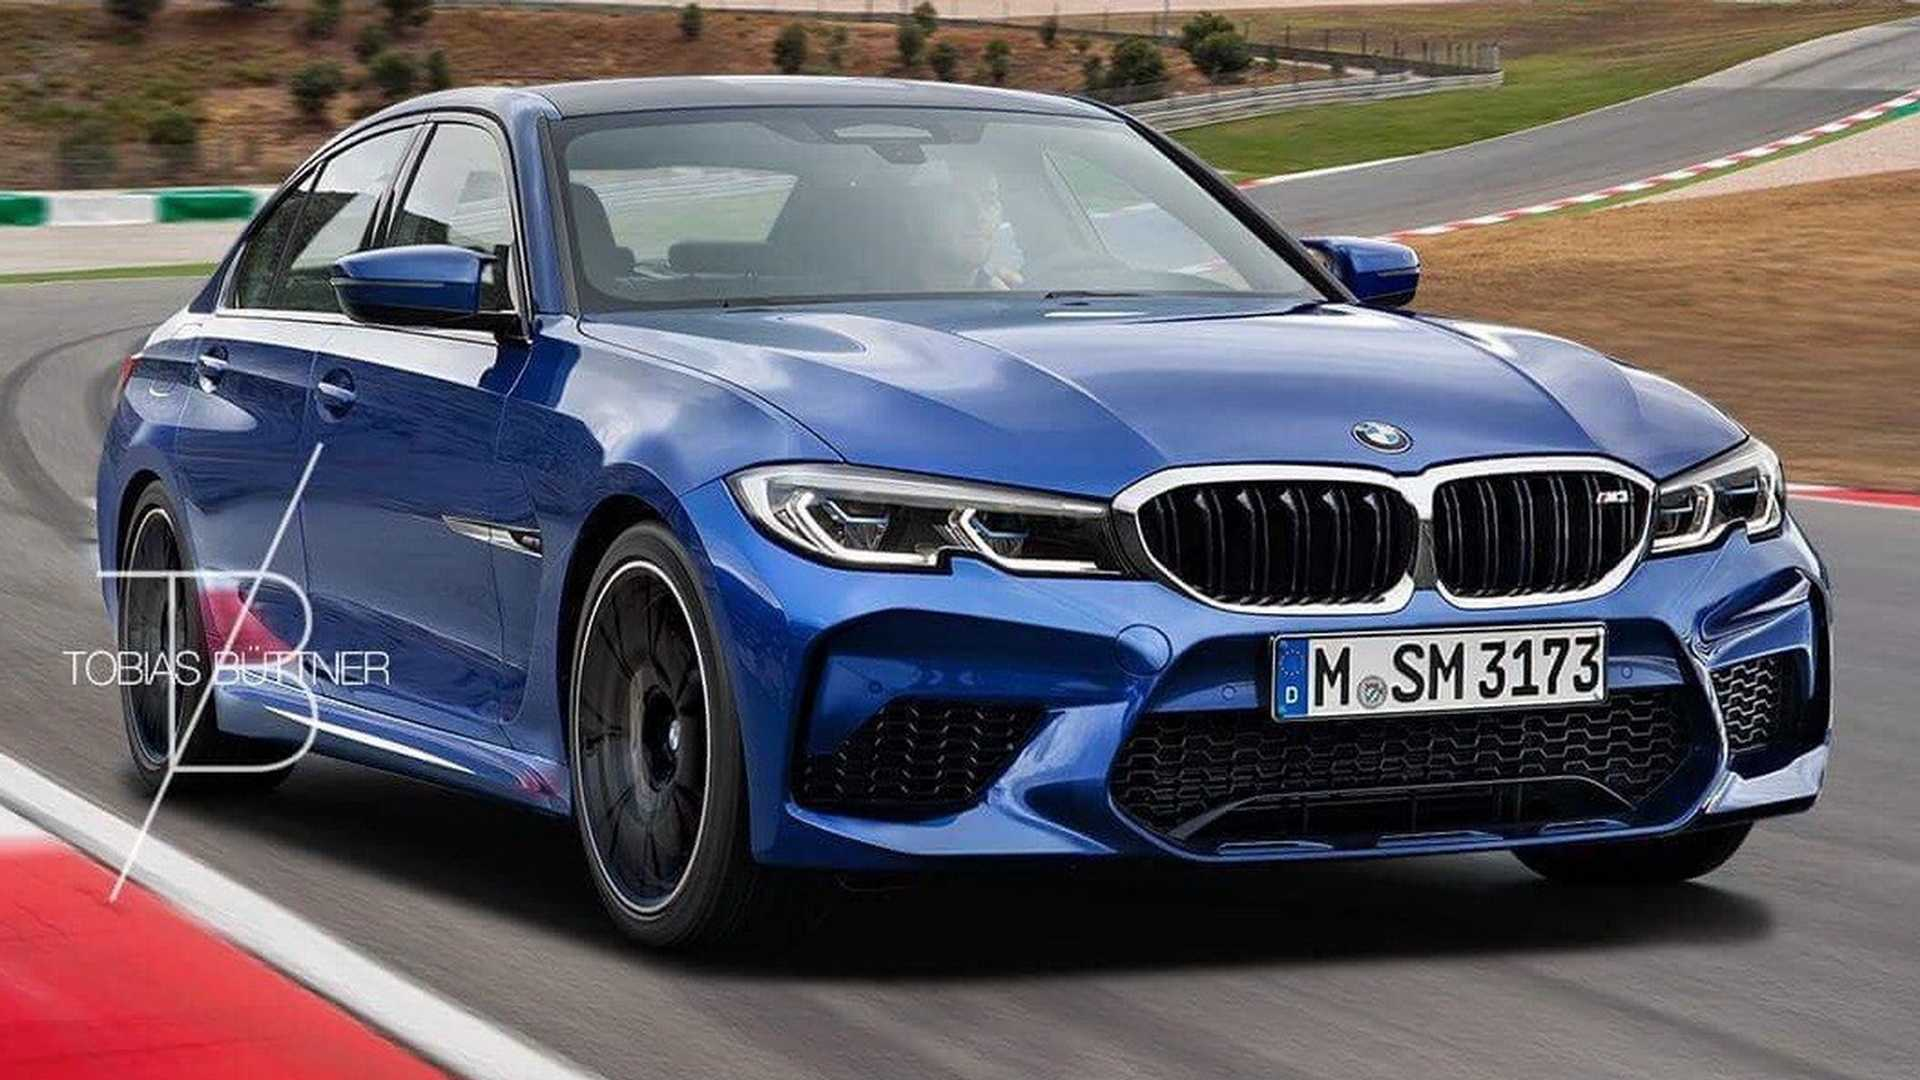 13 Best Review 2020 BMW M4 Photos with 2020 BMW M4